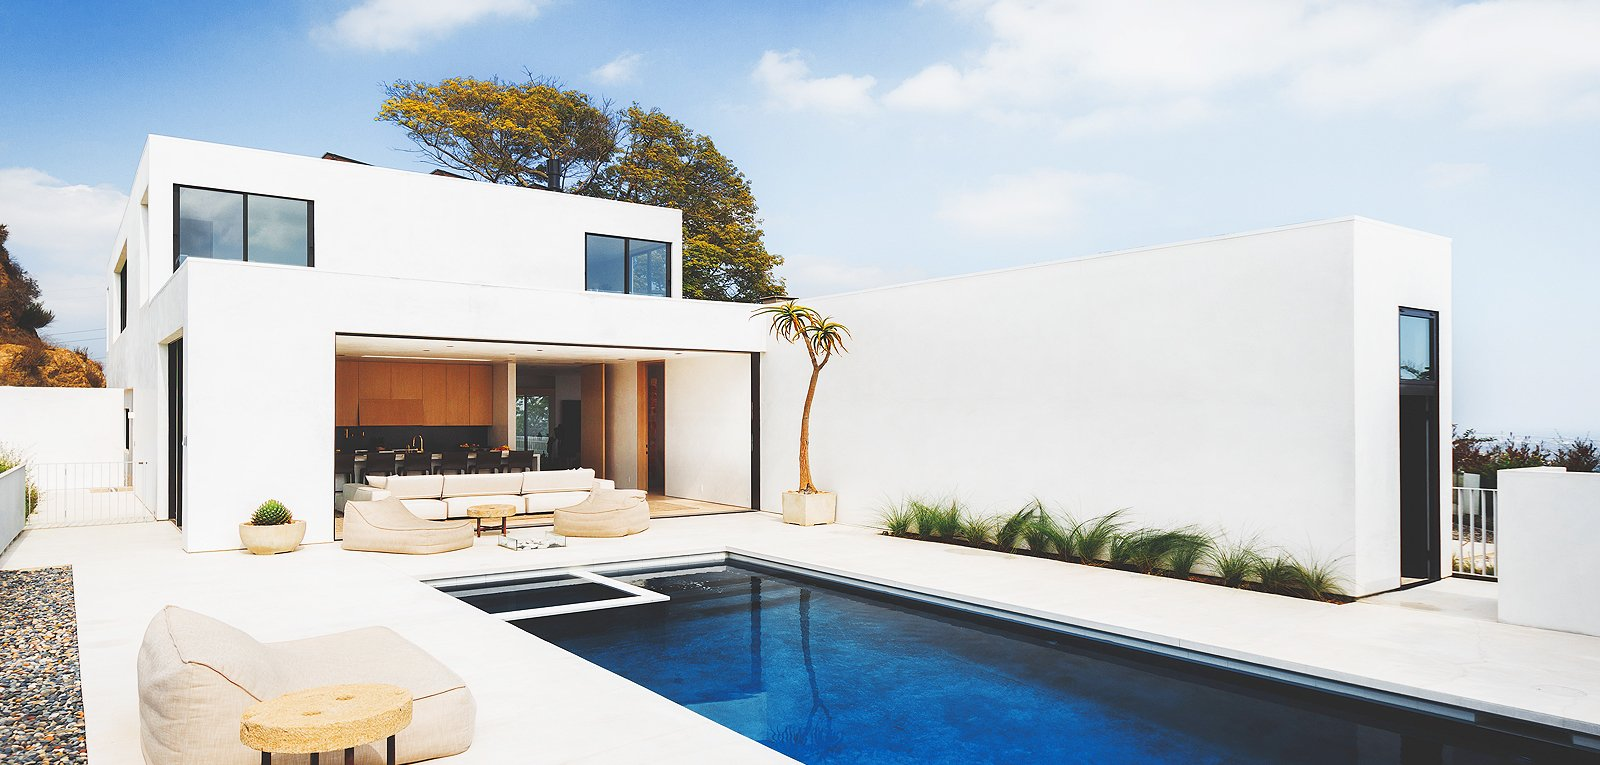 The Lux Group - Los Angeles Luxury Real Estate